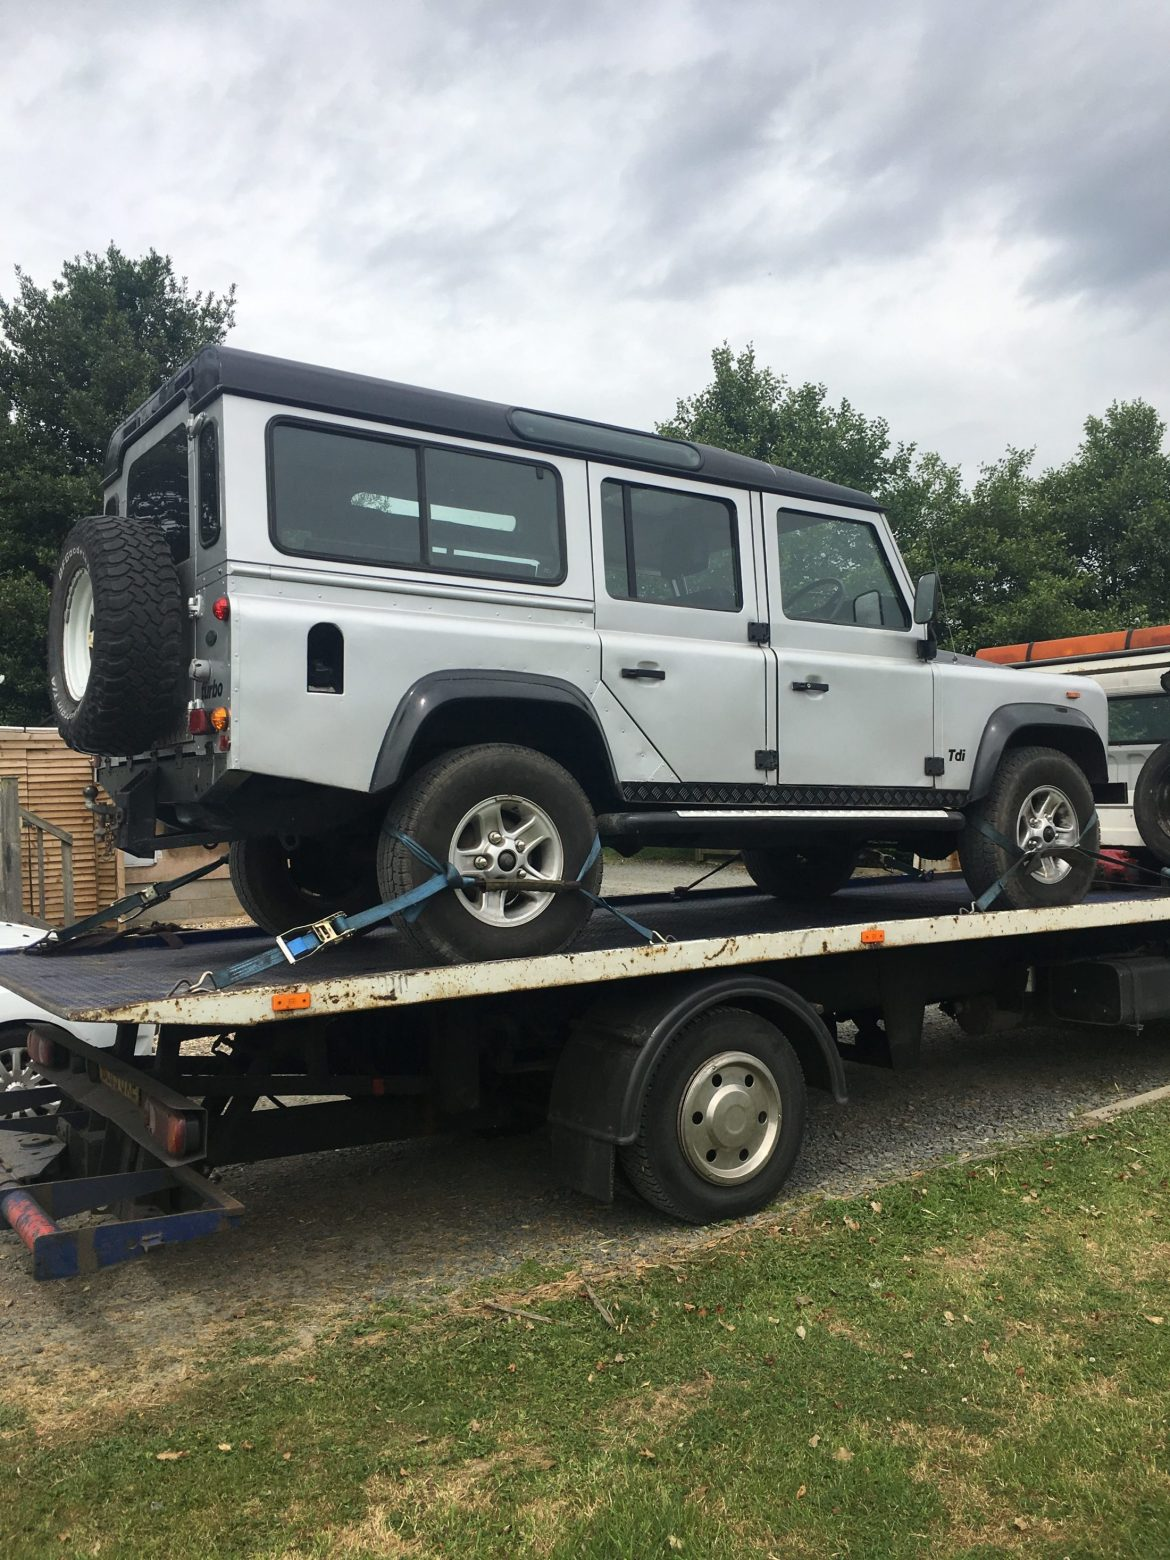 Importing a Classic Land Rover Defender (Part I) - Bishop+Rook